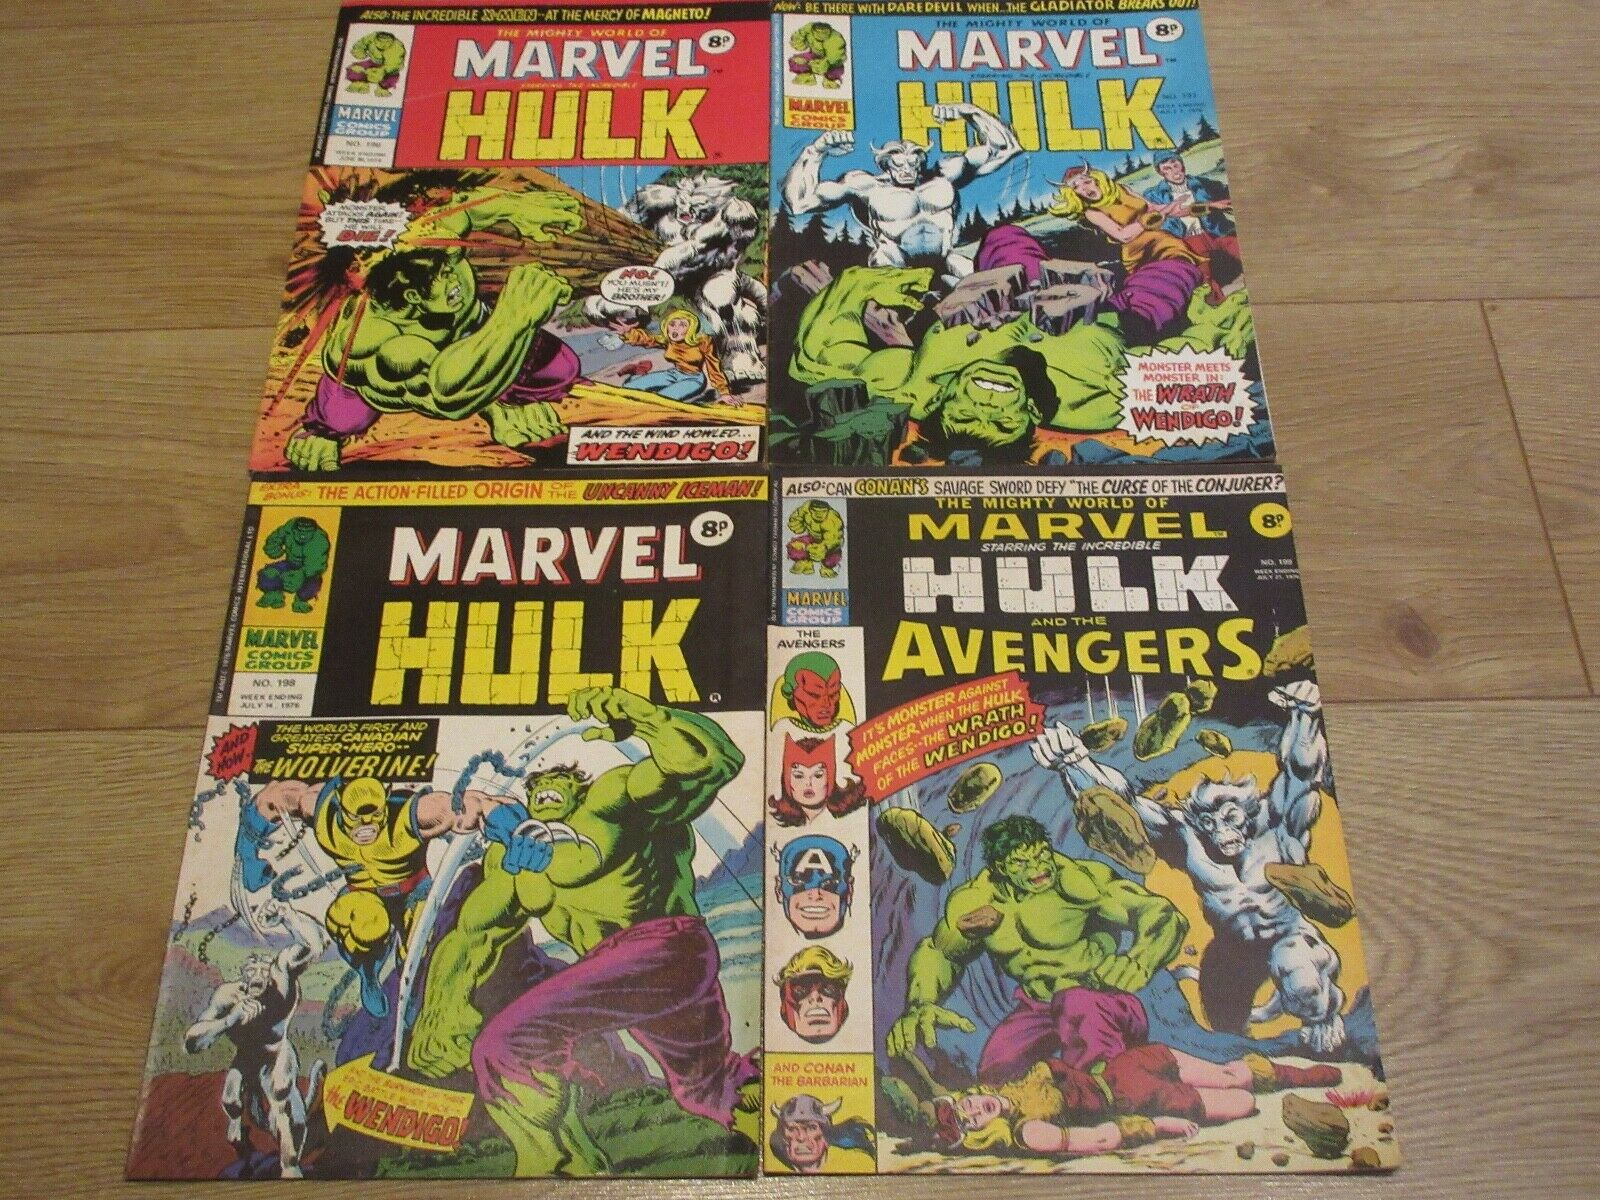 The Mighty World of Marvel, 1st Wolverine  #196,197,198,199, Hulk 1976, FN/FN+